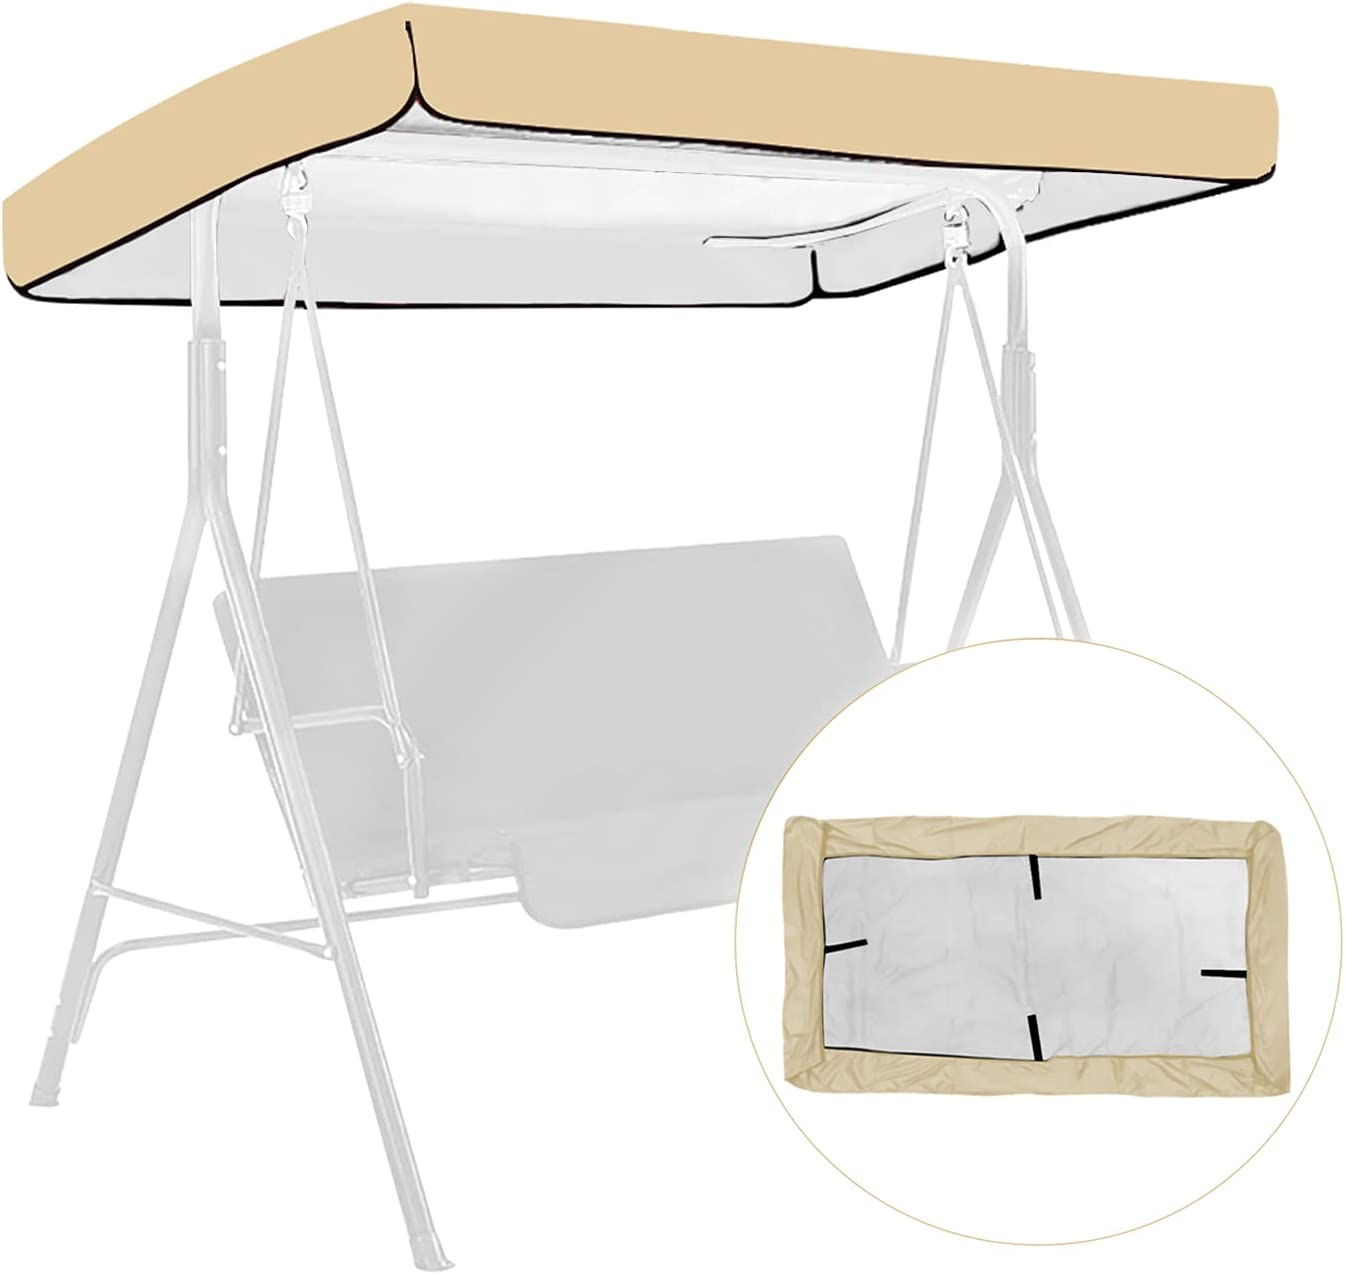 Outdoor Swing Canopy Replacement Top Cover, Waterproof Swing Canopy UV Block Sun Shade Seat Cover, Patio Swing Hammock Roof for Porch Patio Garden Pool Seat(Beige)